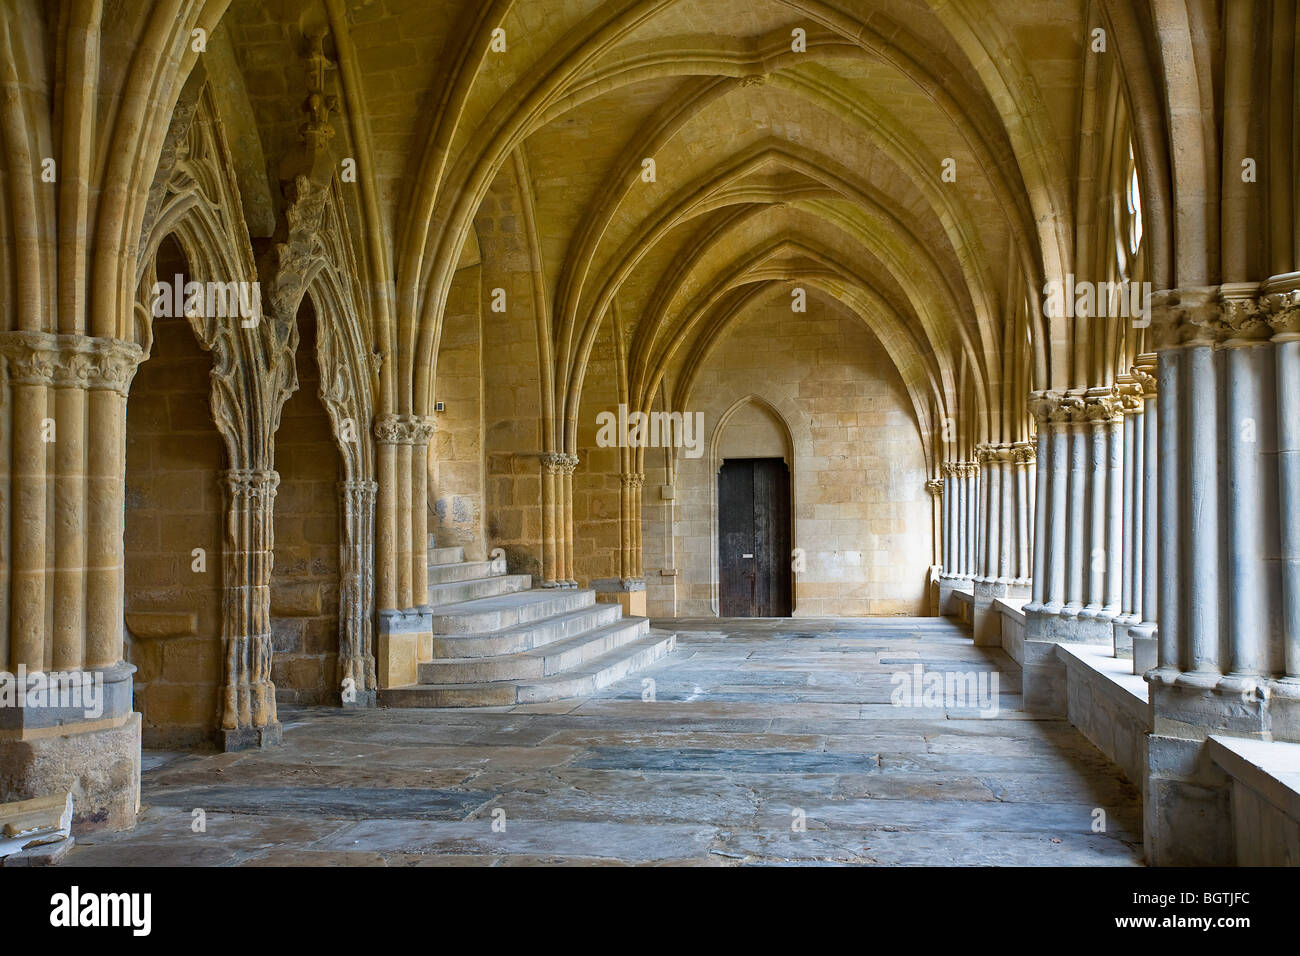 SAINTE-MARIE CATHEDRAL, BAYONNE - Stock Image